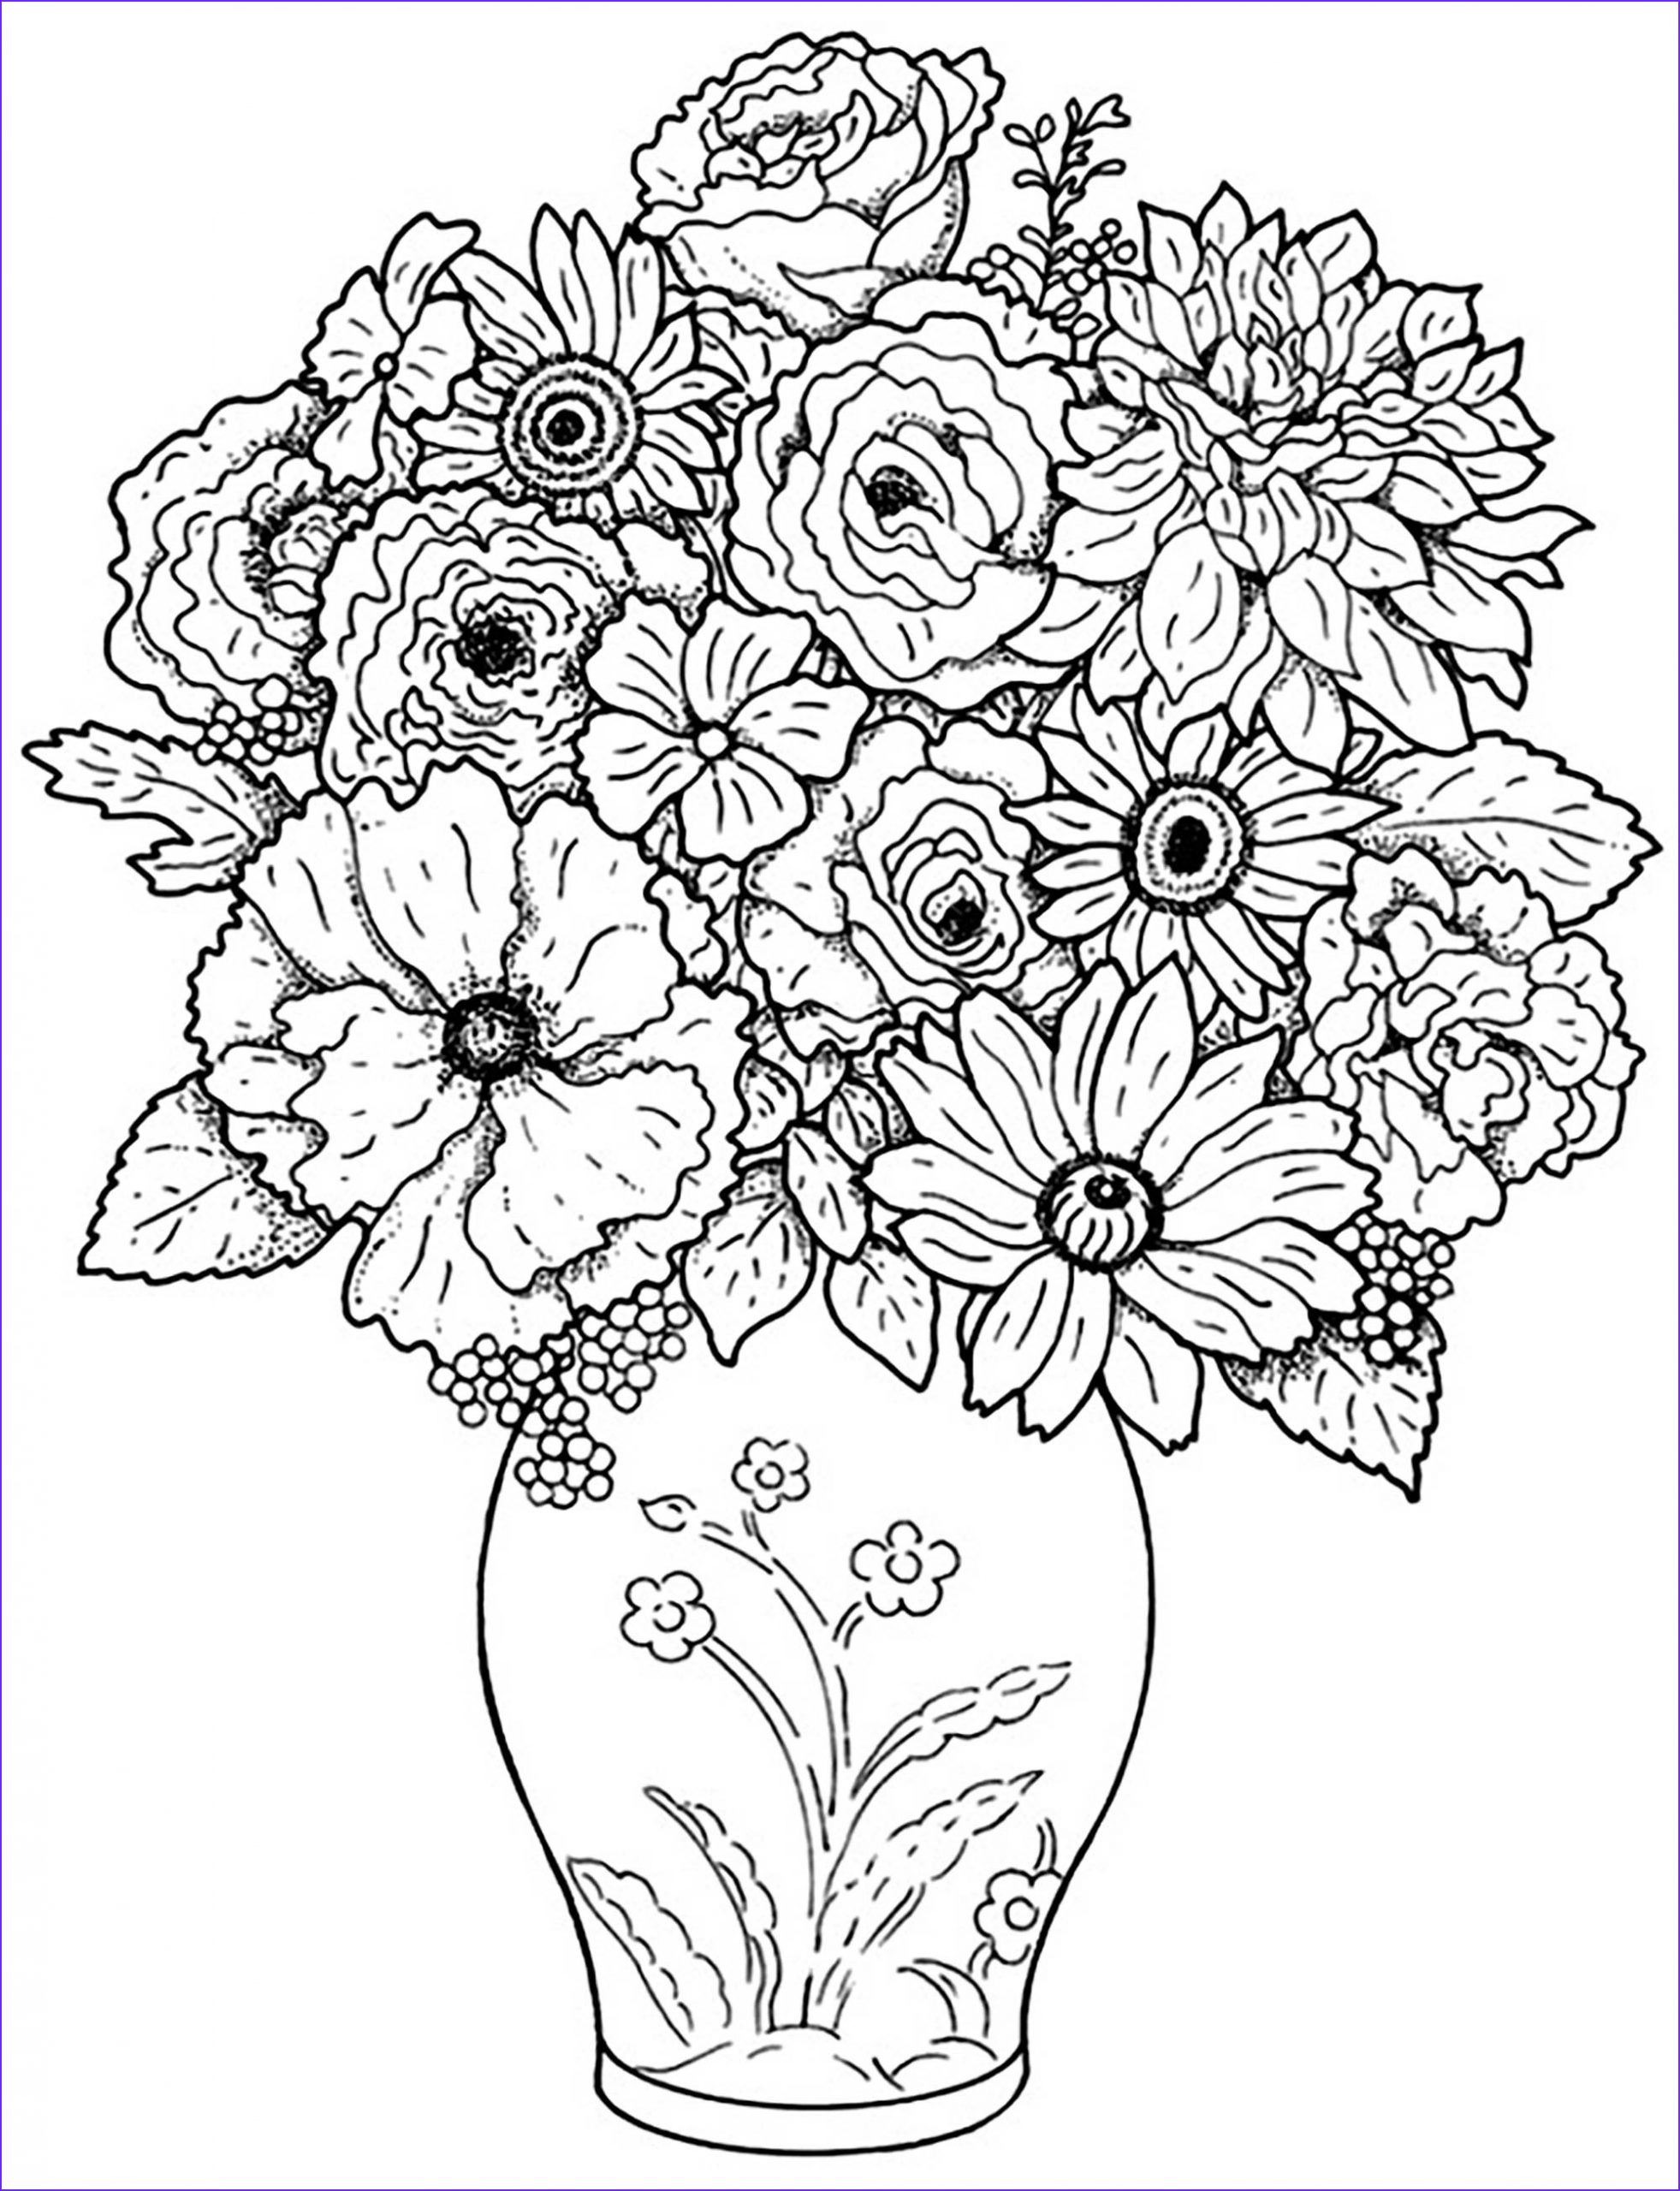 Flowers Coloring Page for Kids Awesome Collection Flowers to Color for Kids Flowers Kids Coloring Pages